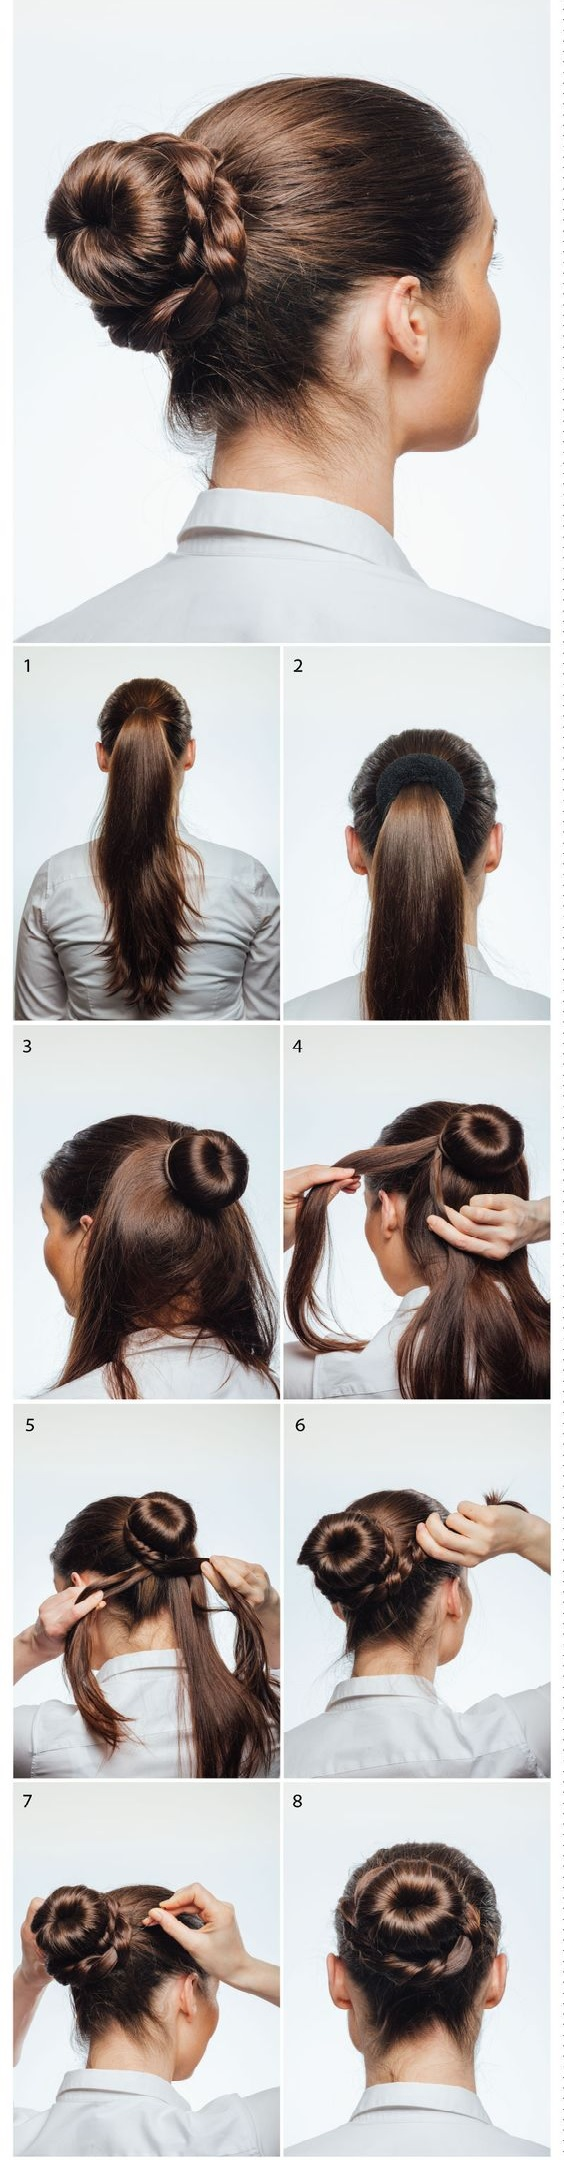 faire chignon hotesse de l air